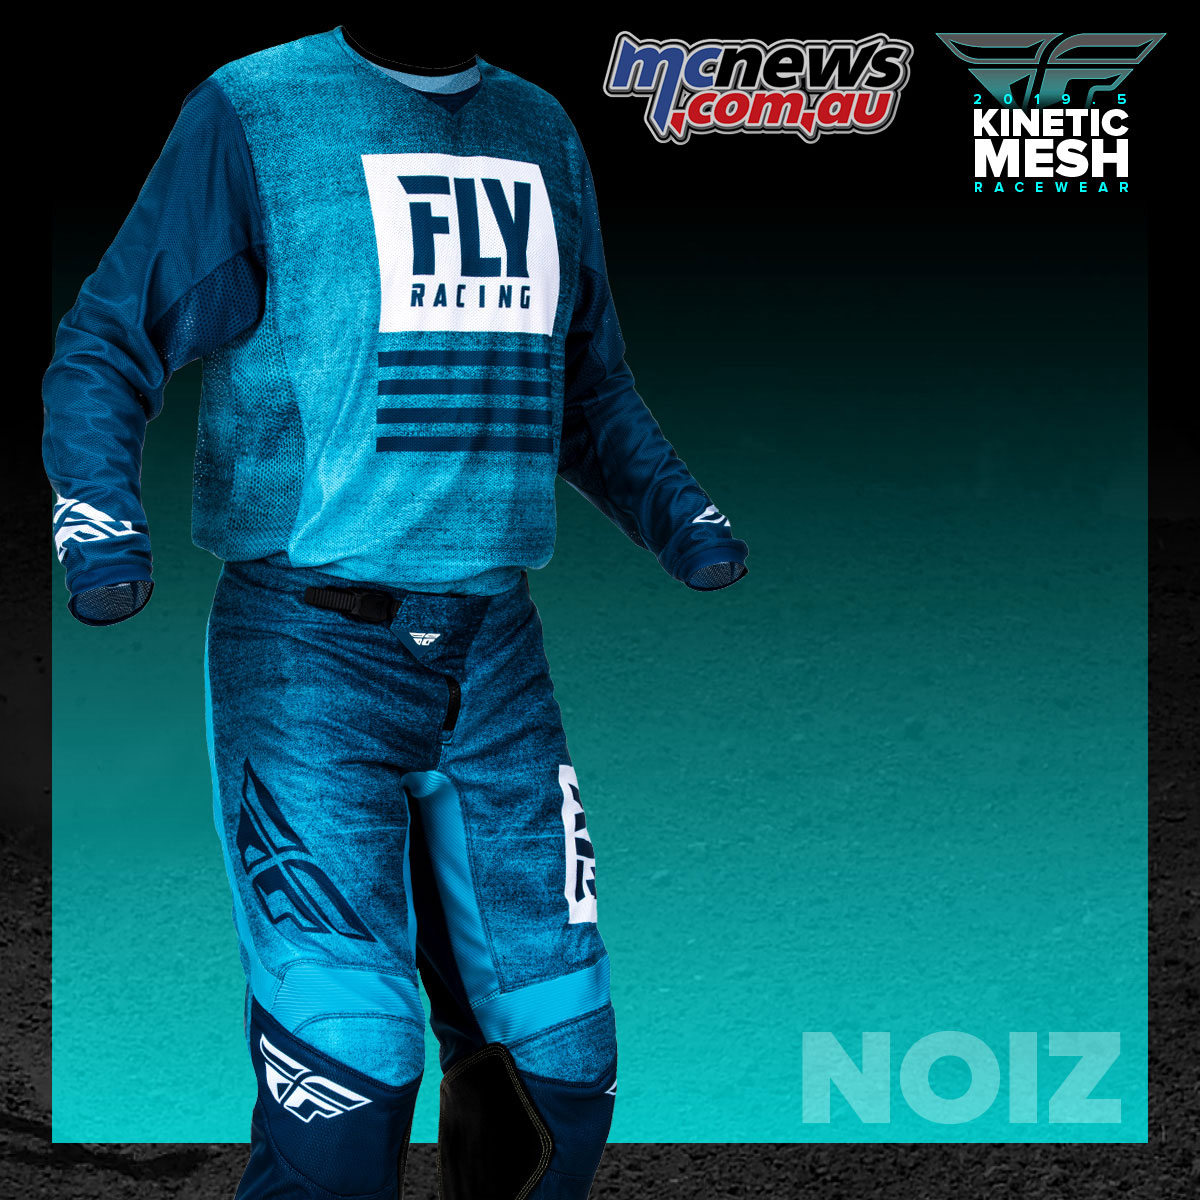 Fly Racing Kinetic Mesh Racewear